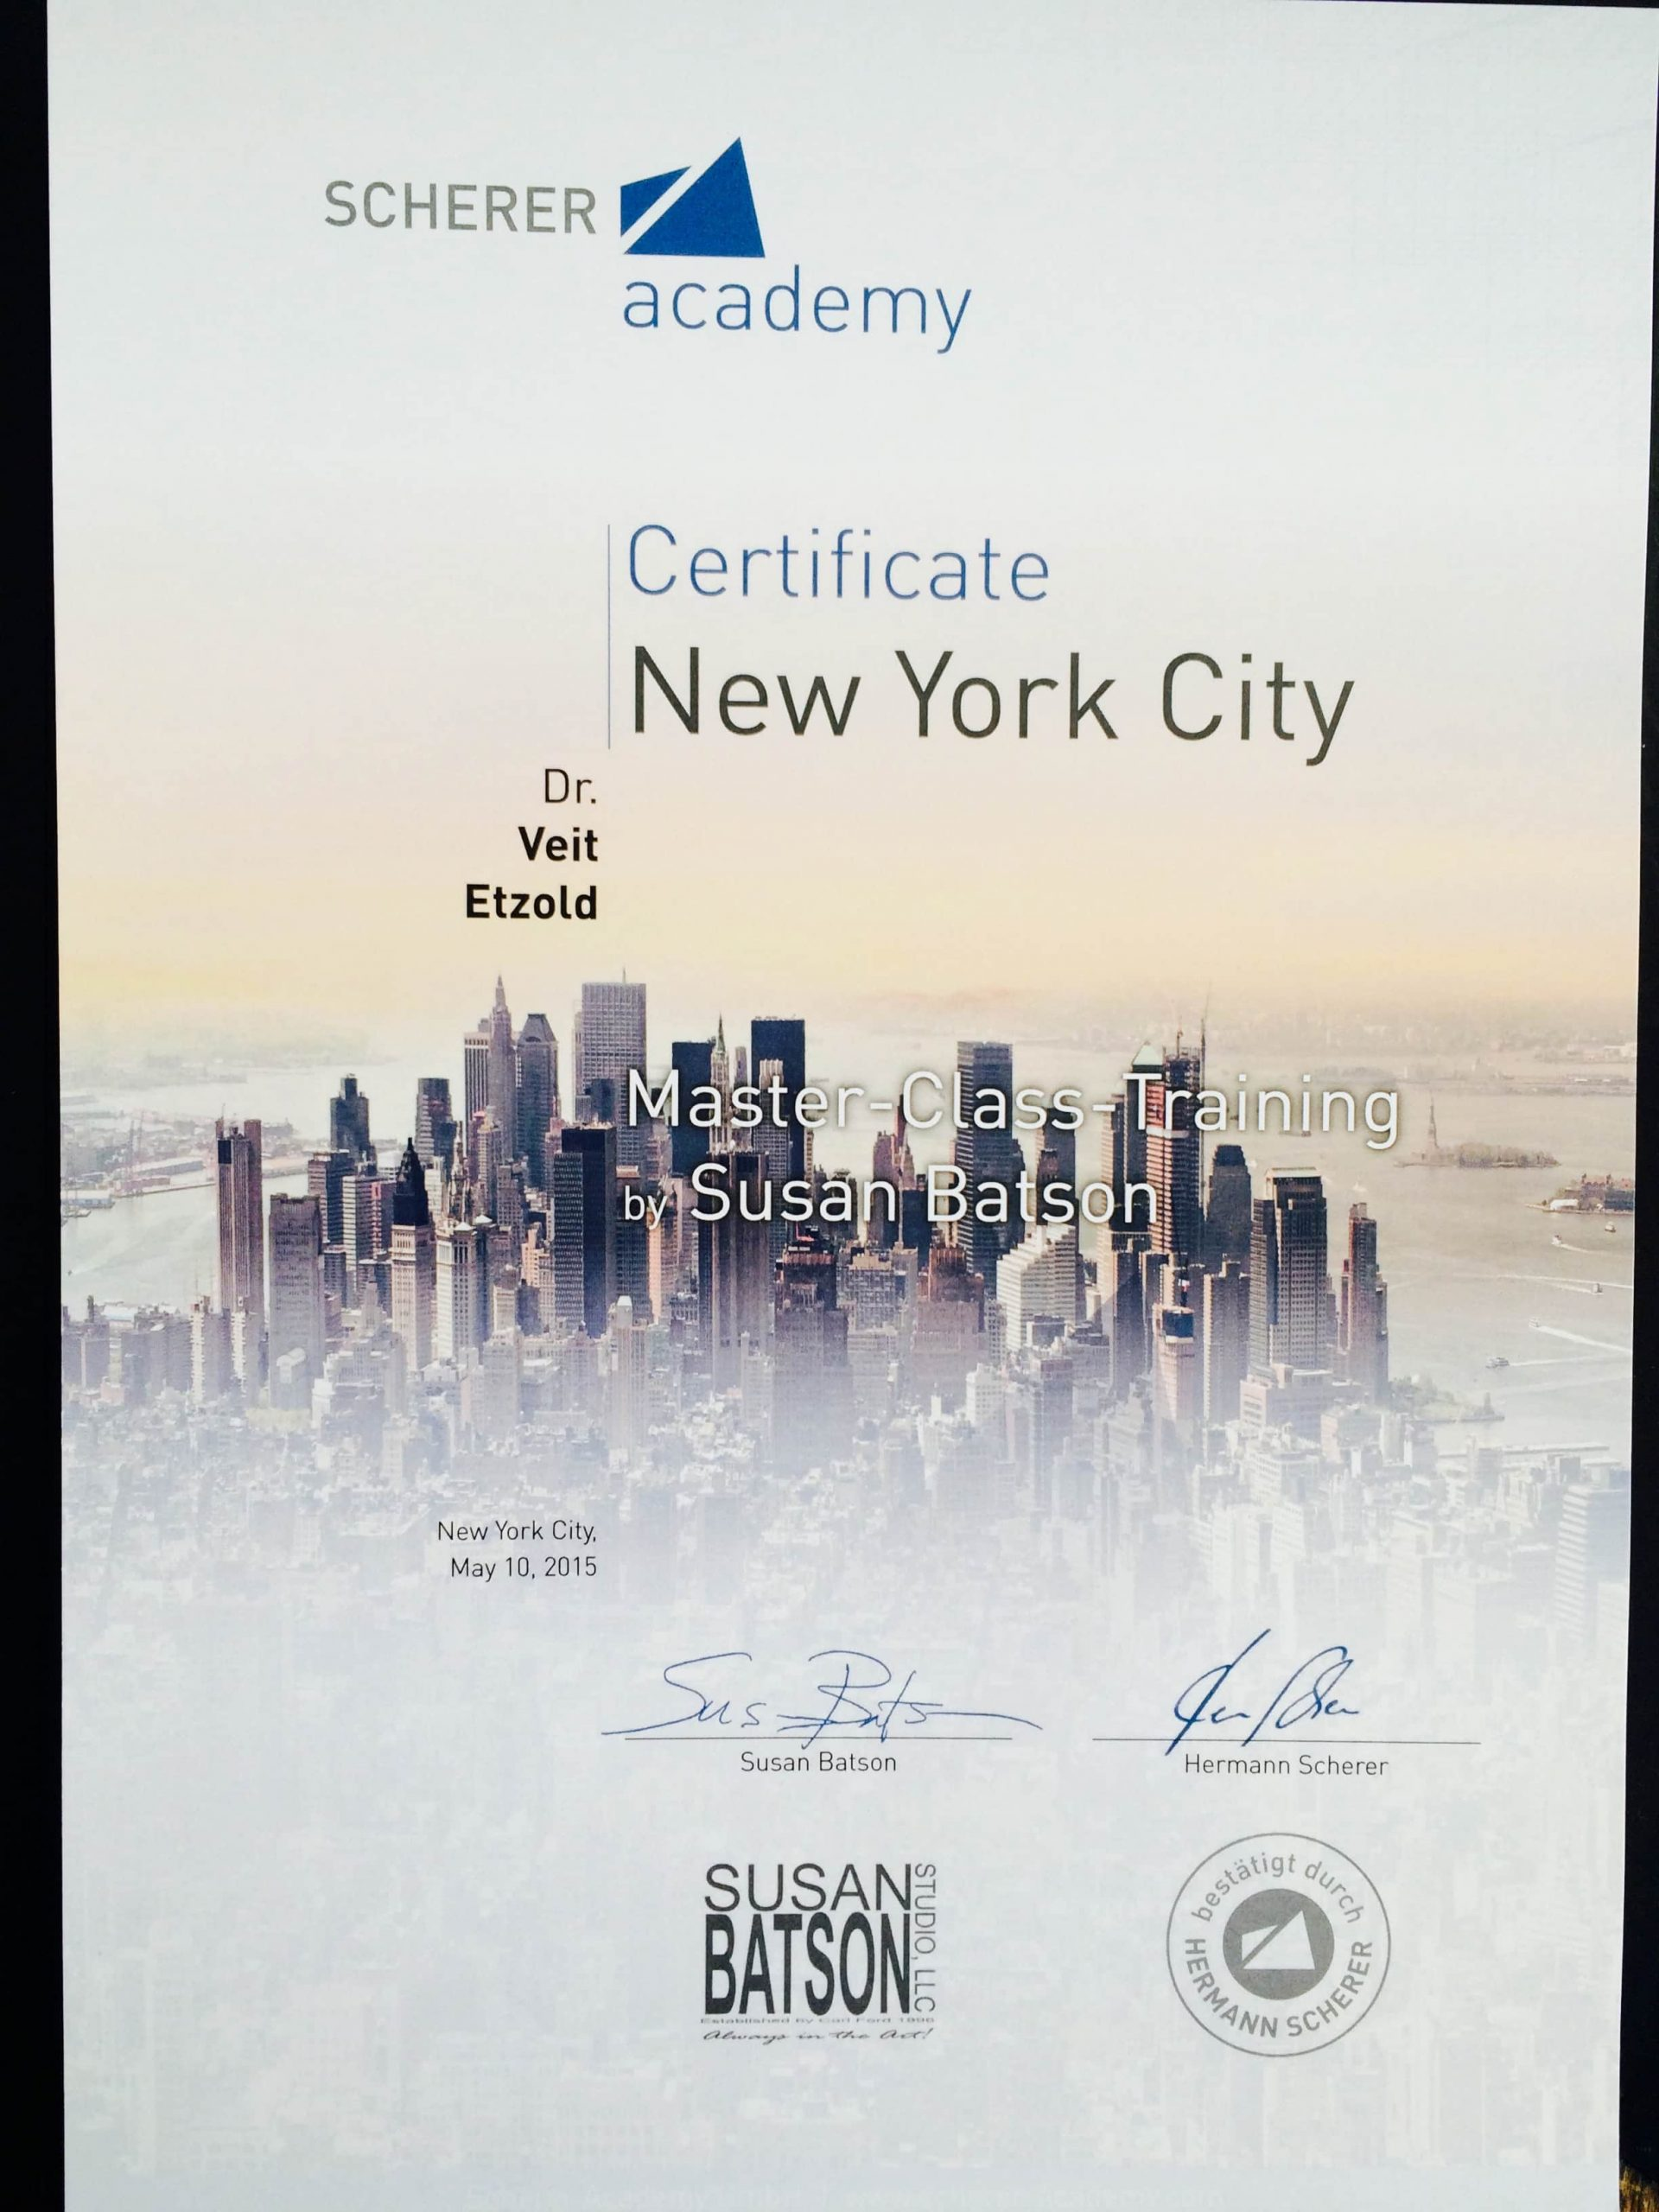 Certificates from Susan Batson and Lee Strasberg Institute